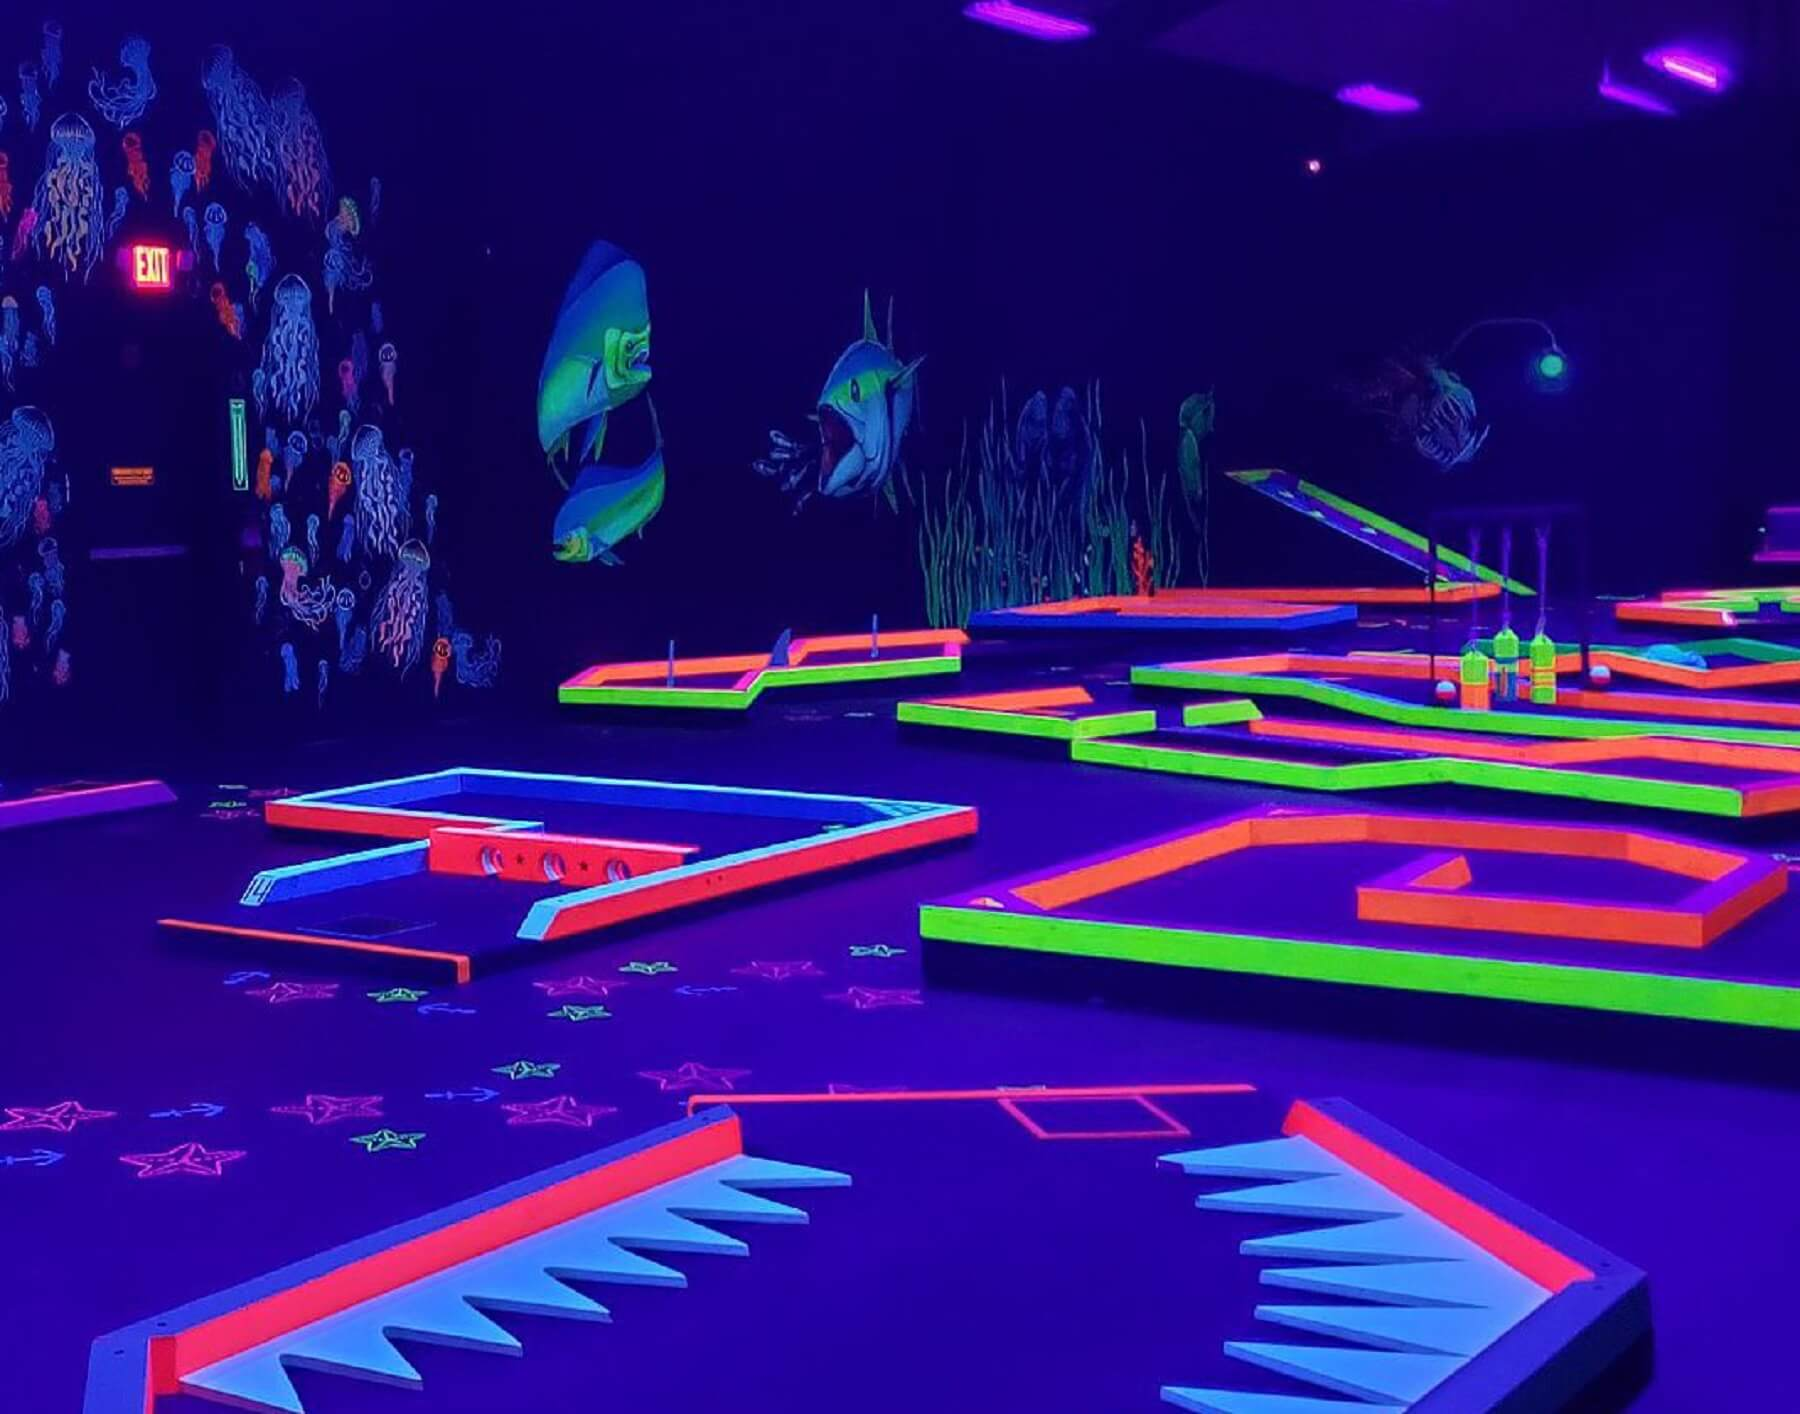 Glow in the dark indoor golf